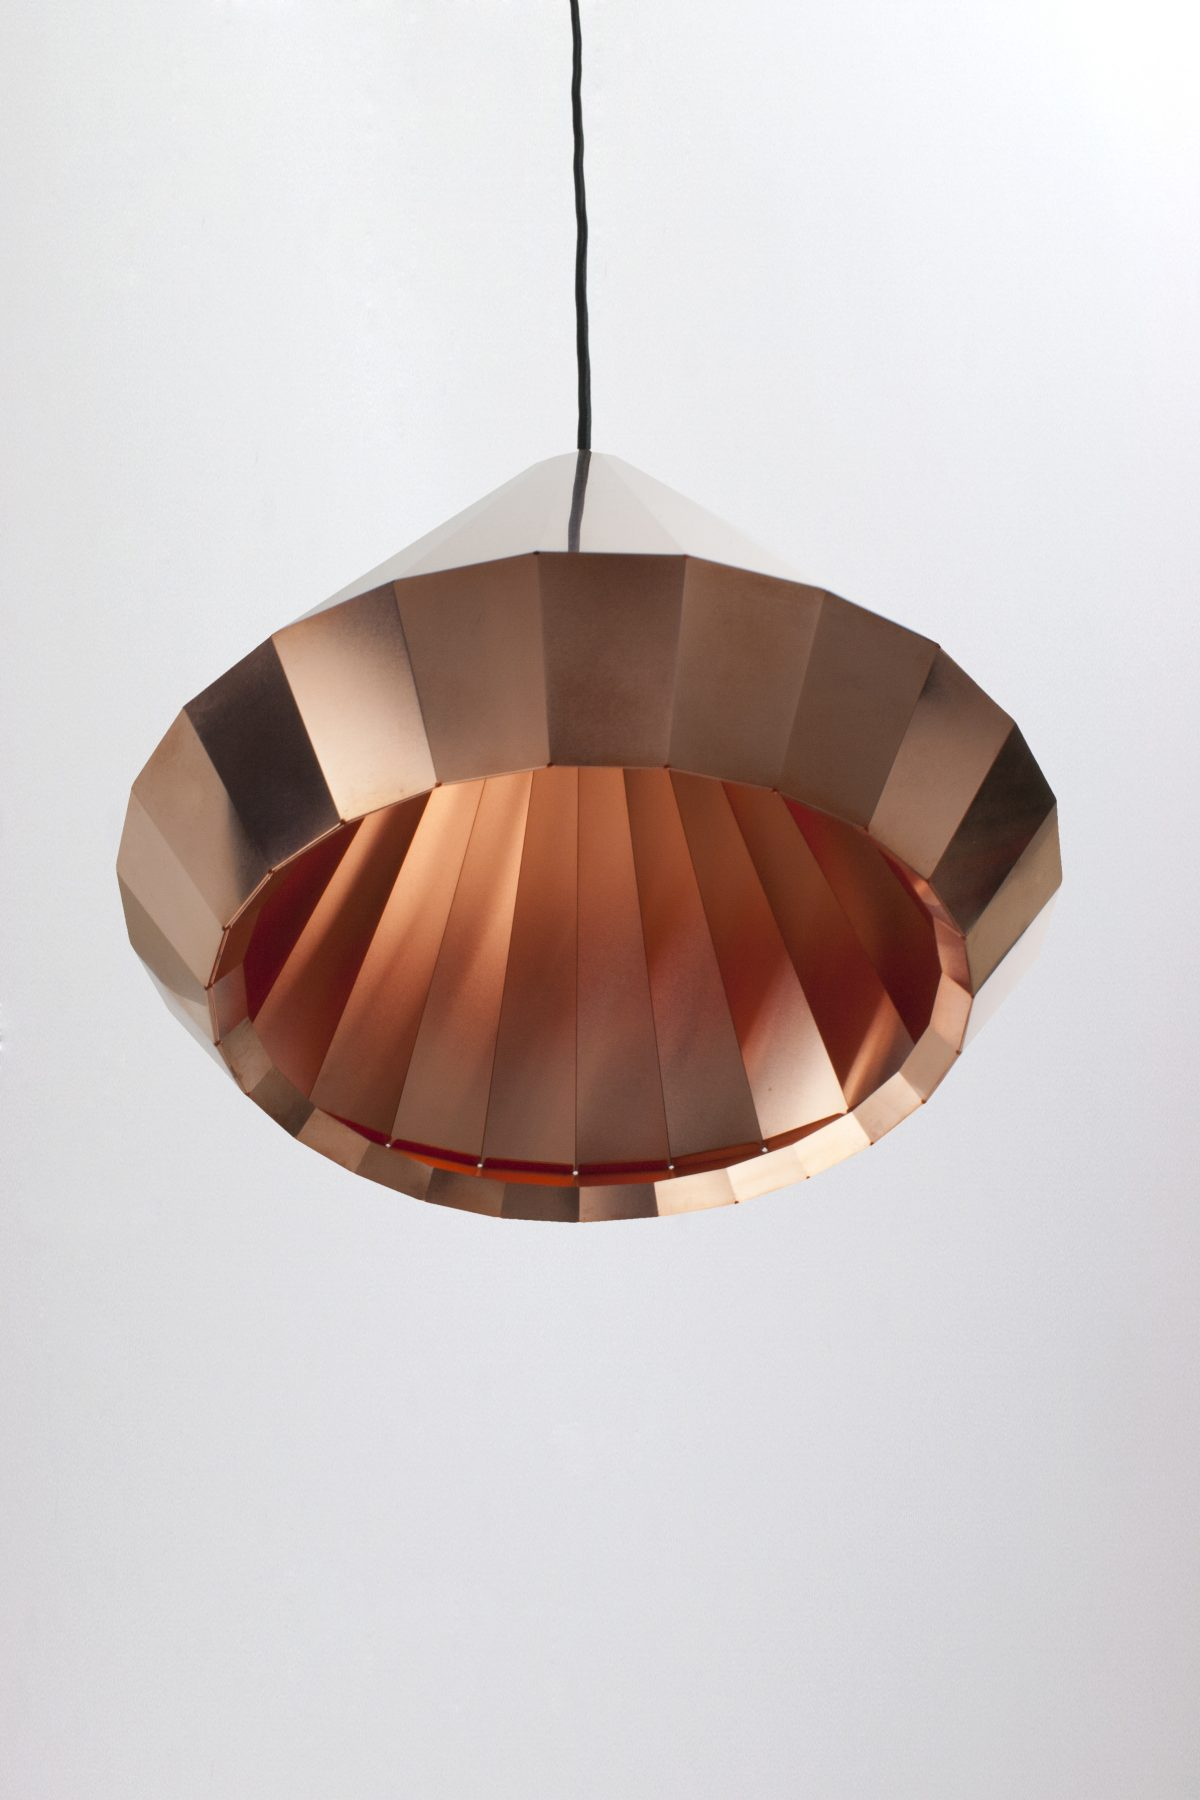 Copper Light CL-25 – David Derksen Design